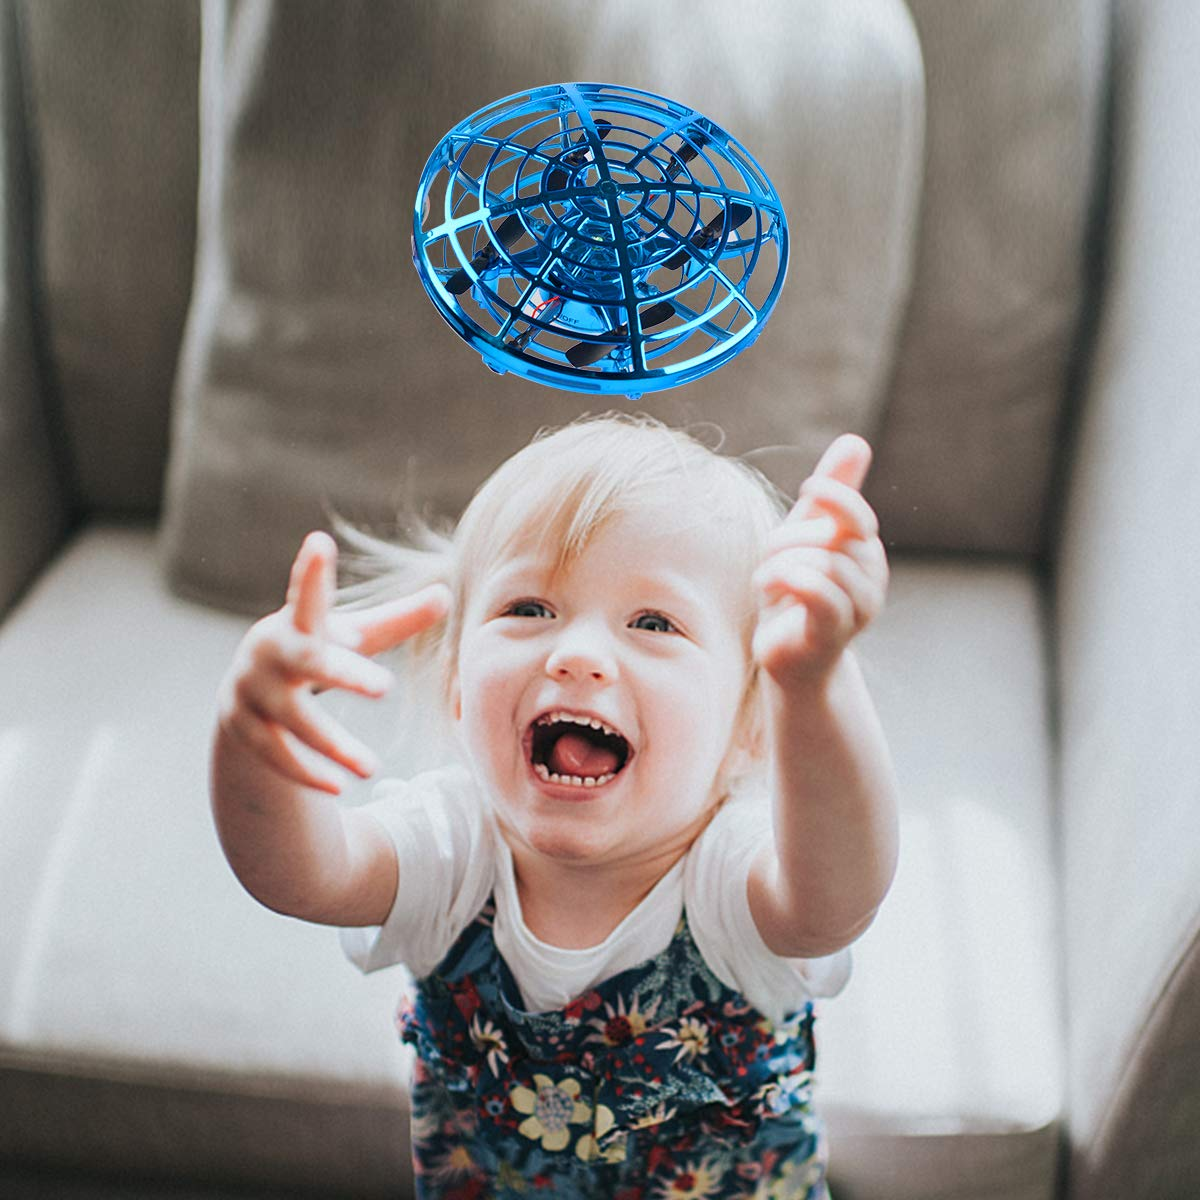 Oucles Mini Drones for Kids and Adults Ball with 360° Rotating and Shinning LED Lights, Flying Toy for Boys Girls and Kids Gifts by Oucles (Image #7)